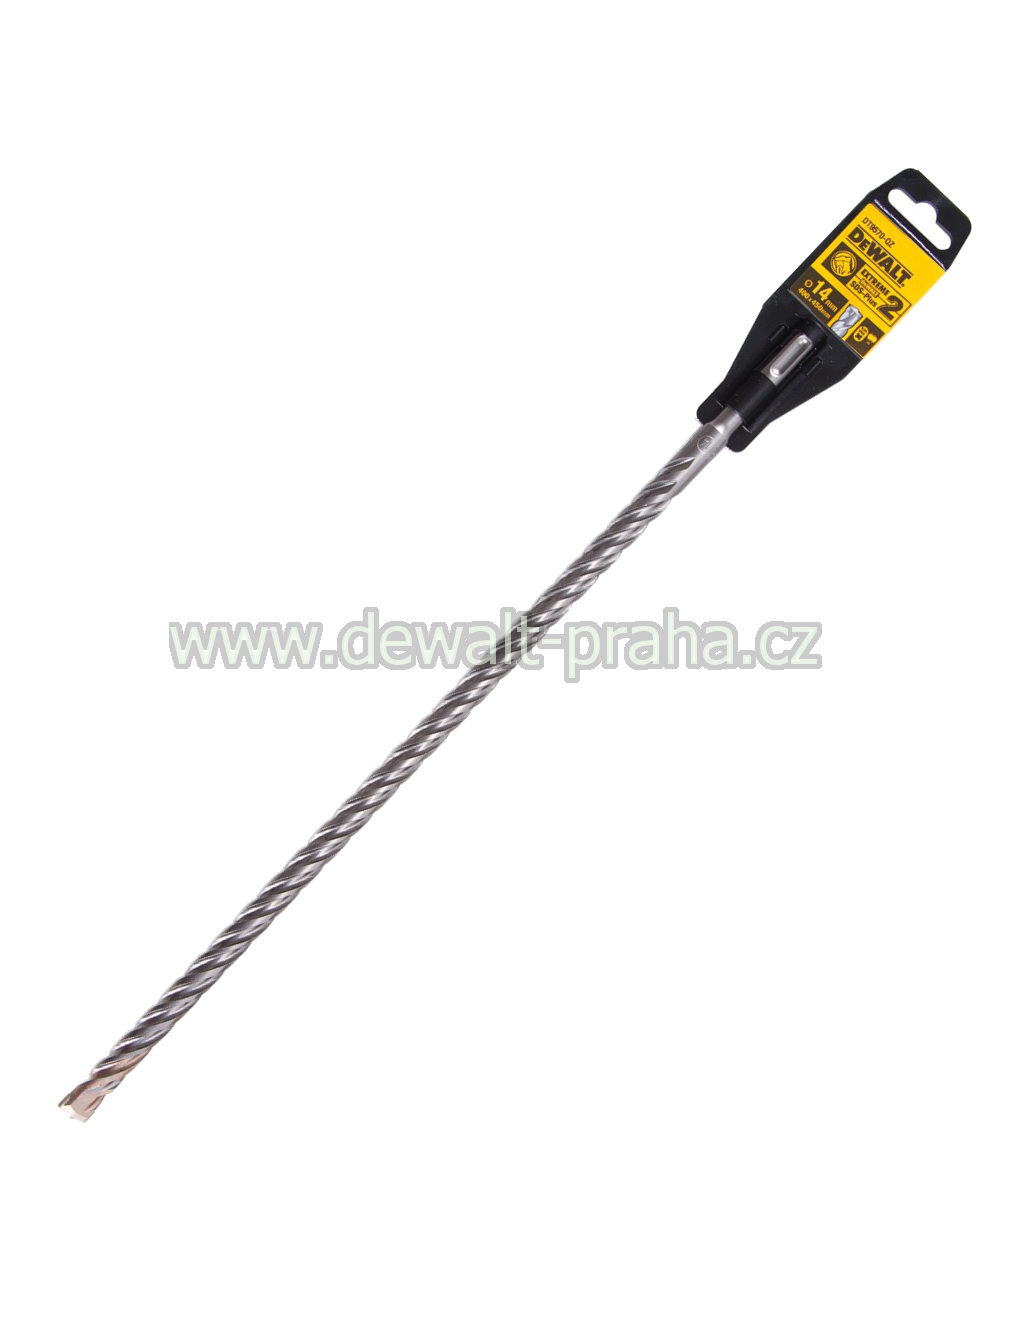 DT9570 DeWALT EXTREME 2 Vrták do betonu SDS Plus 14 x 450 mm